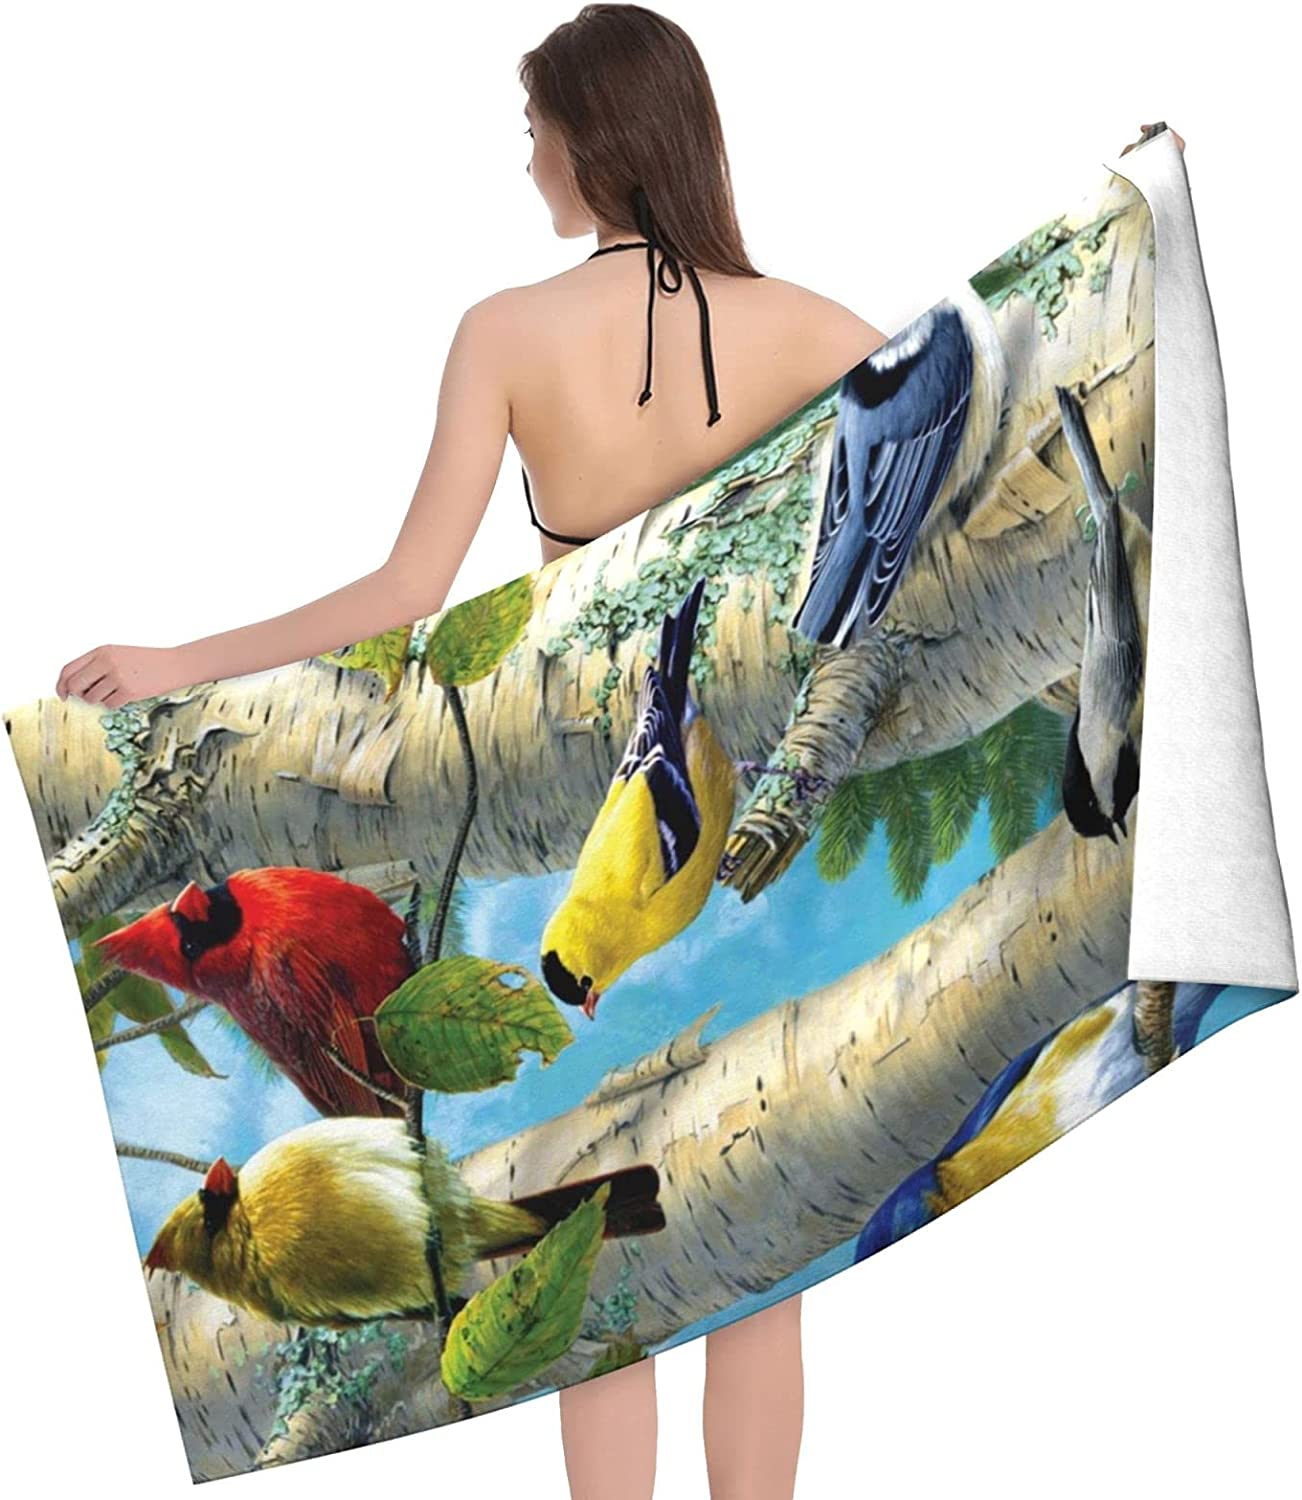 Birds in Birch Tree Superior Print Adult Doubl Towel Max 64% OFF - Towels Beach